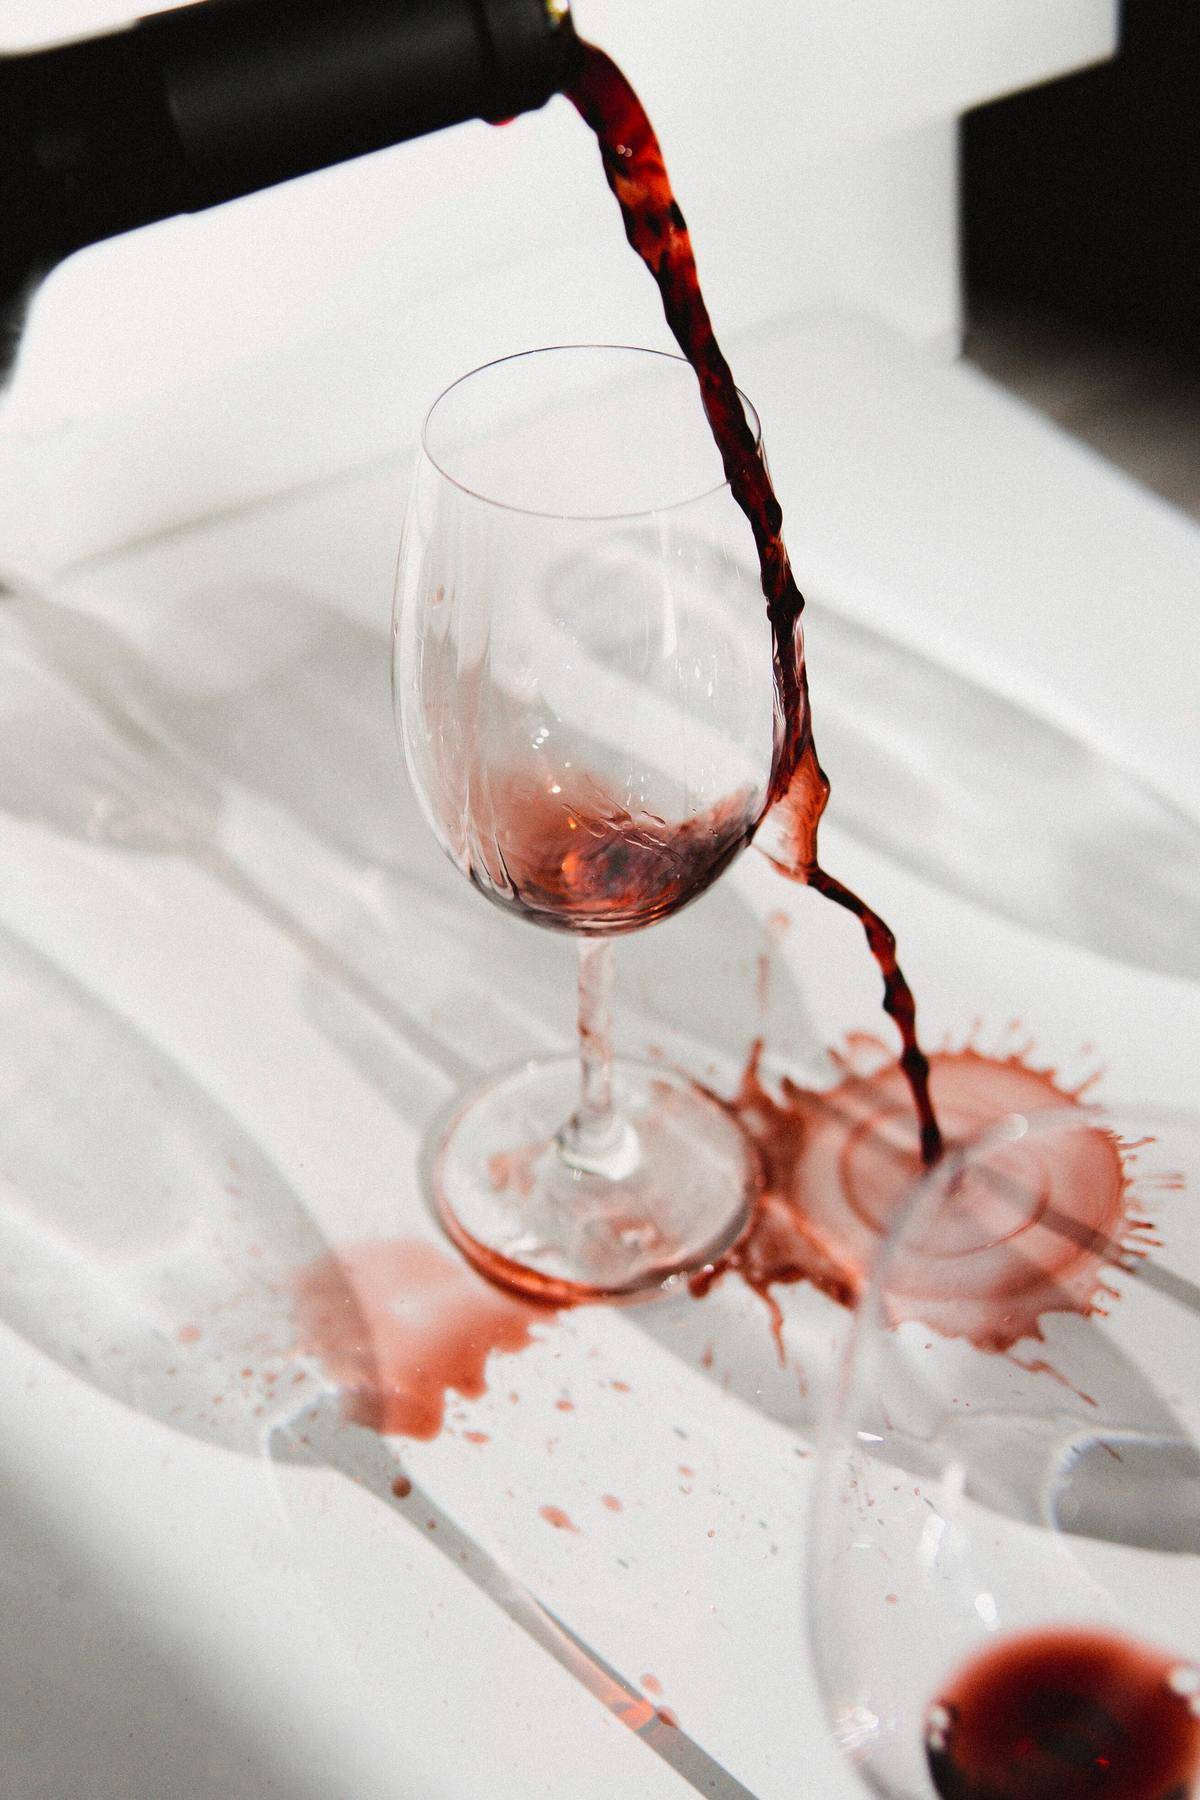 Red wine pouring over glass and hitting white table